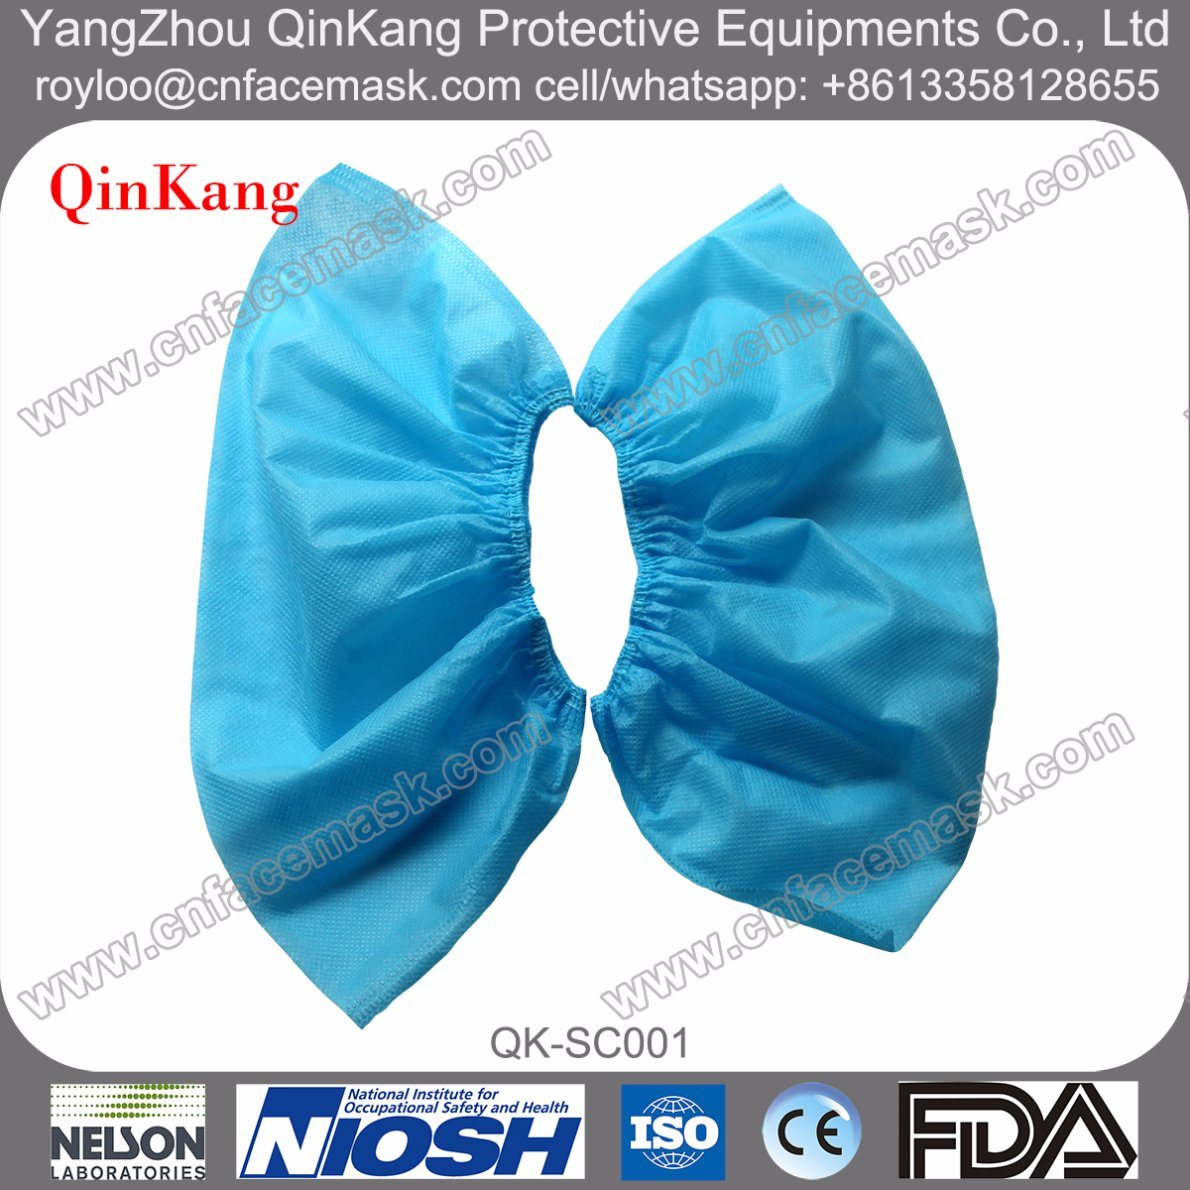 Disposable Non-Woven Elastic Shoe Covers for Hospital